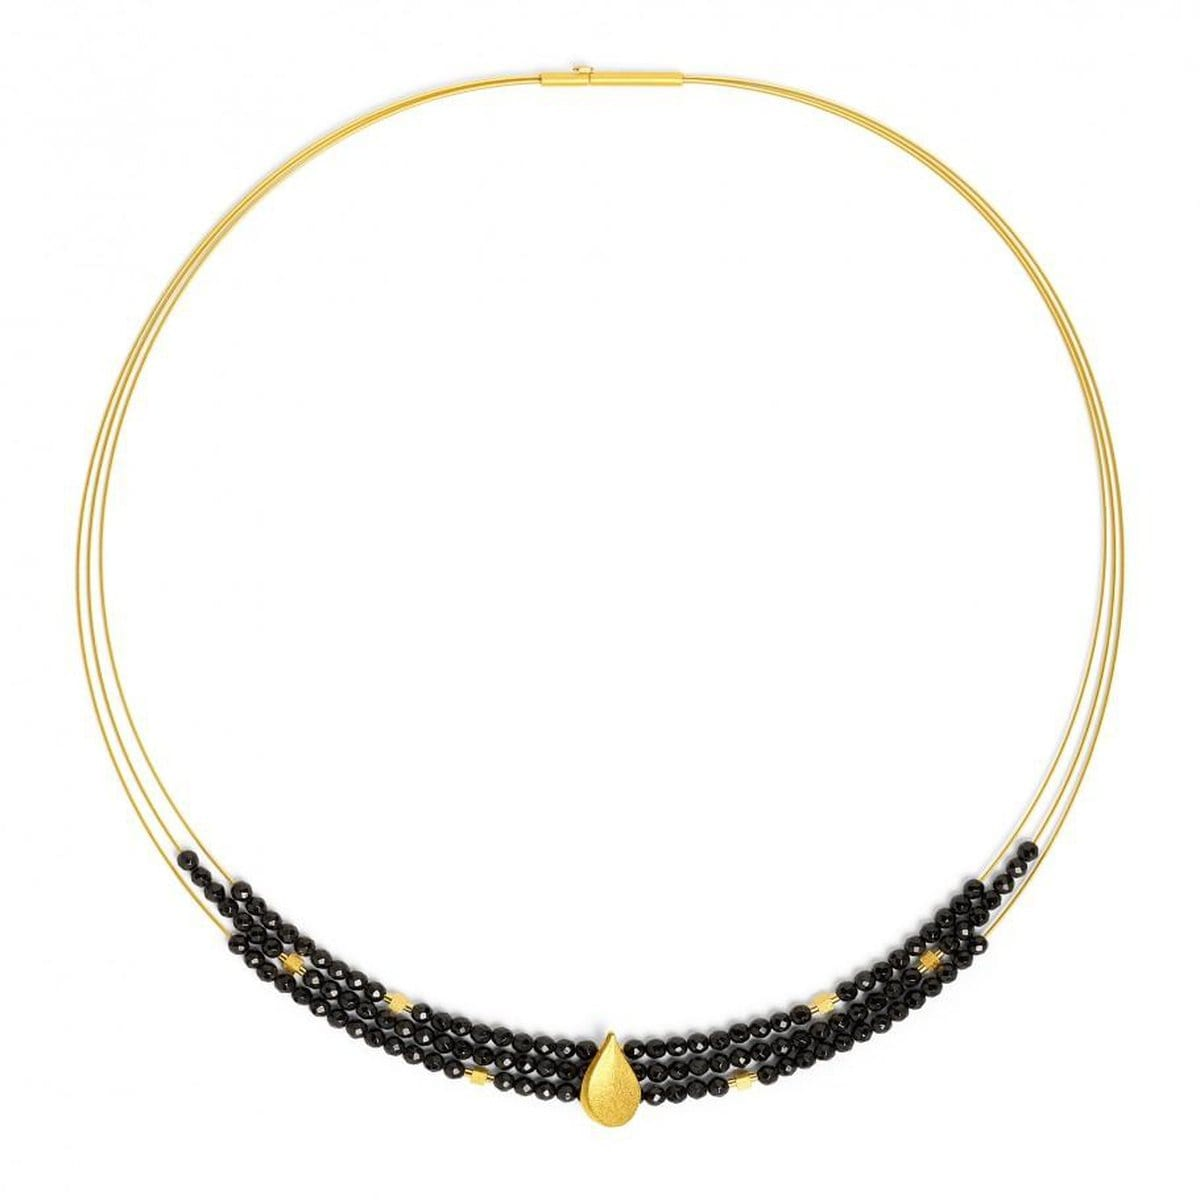 Cubaleni Spinel Necklace - 84122496-Bernd Wolf-Renee Taylor Gallery